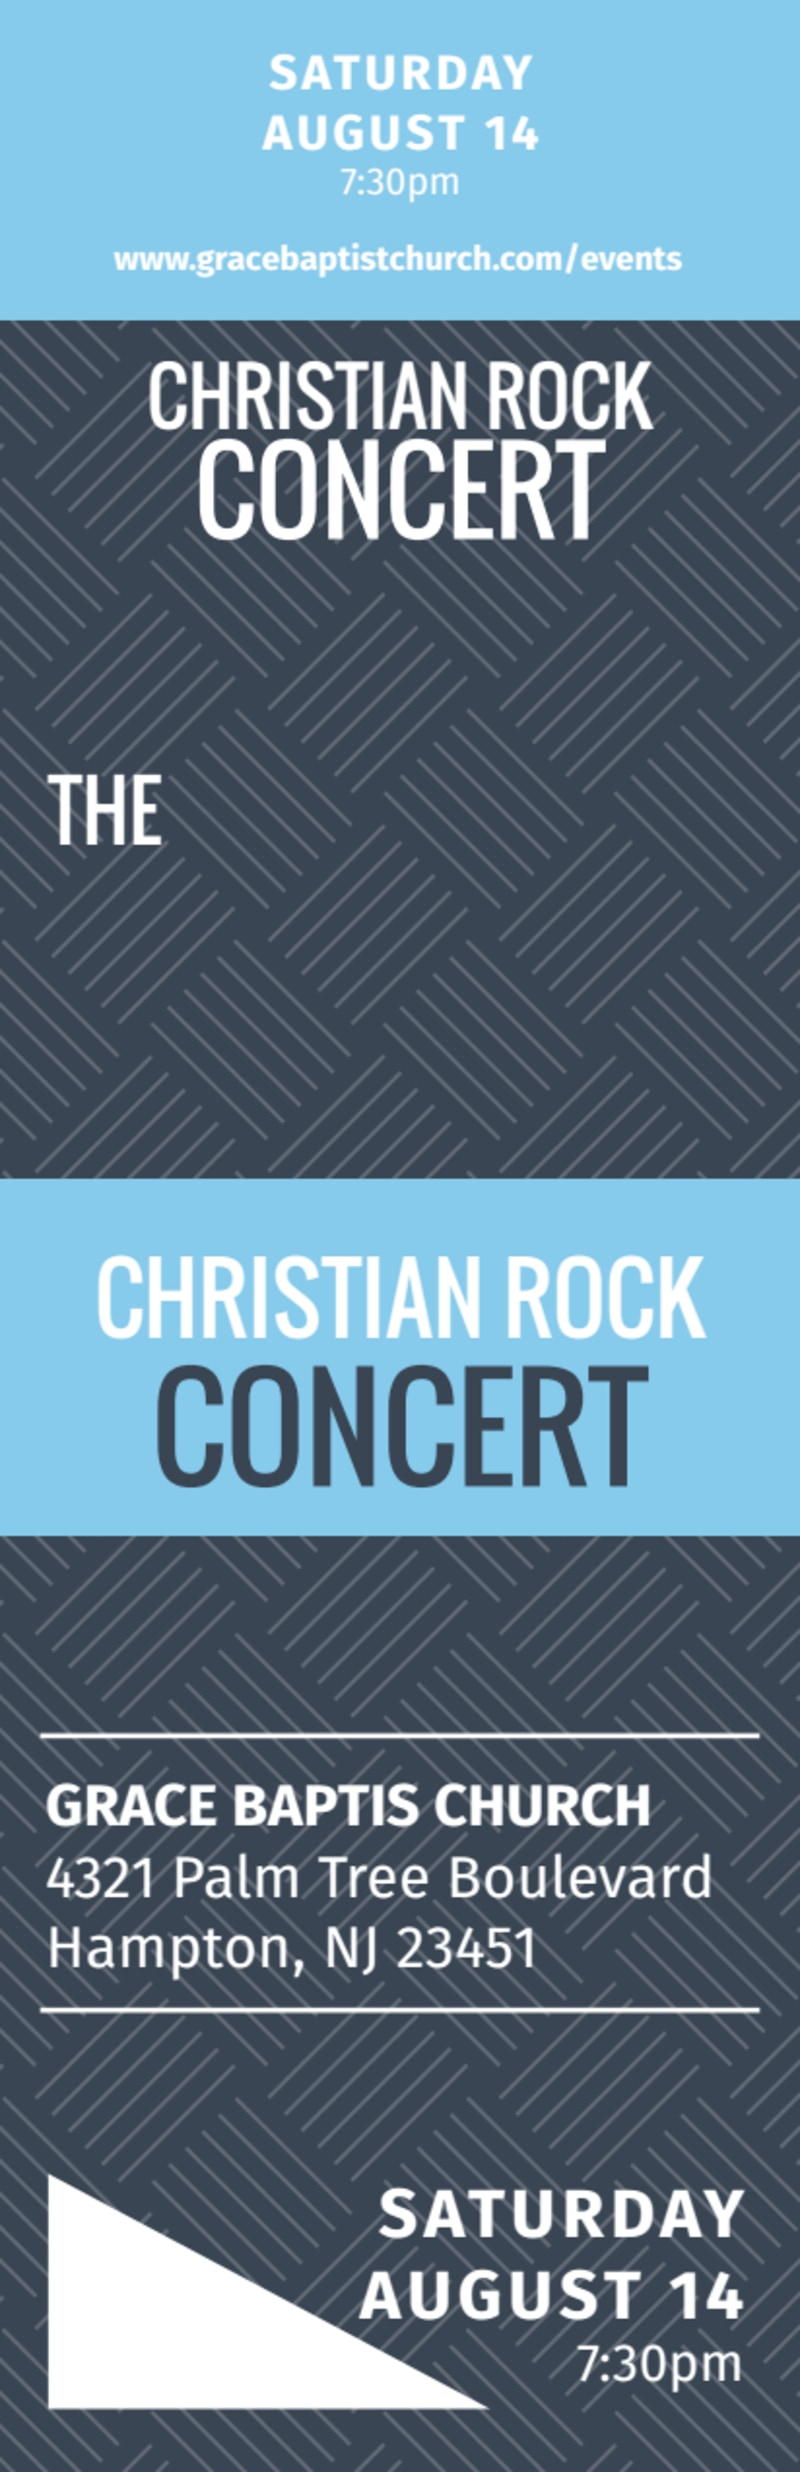 Christian Concert Ticket Template Preview 3